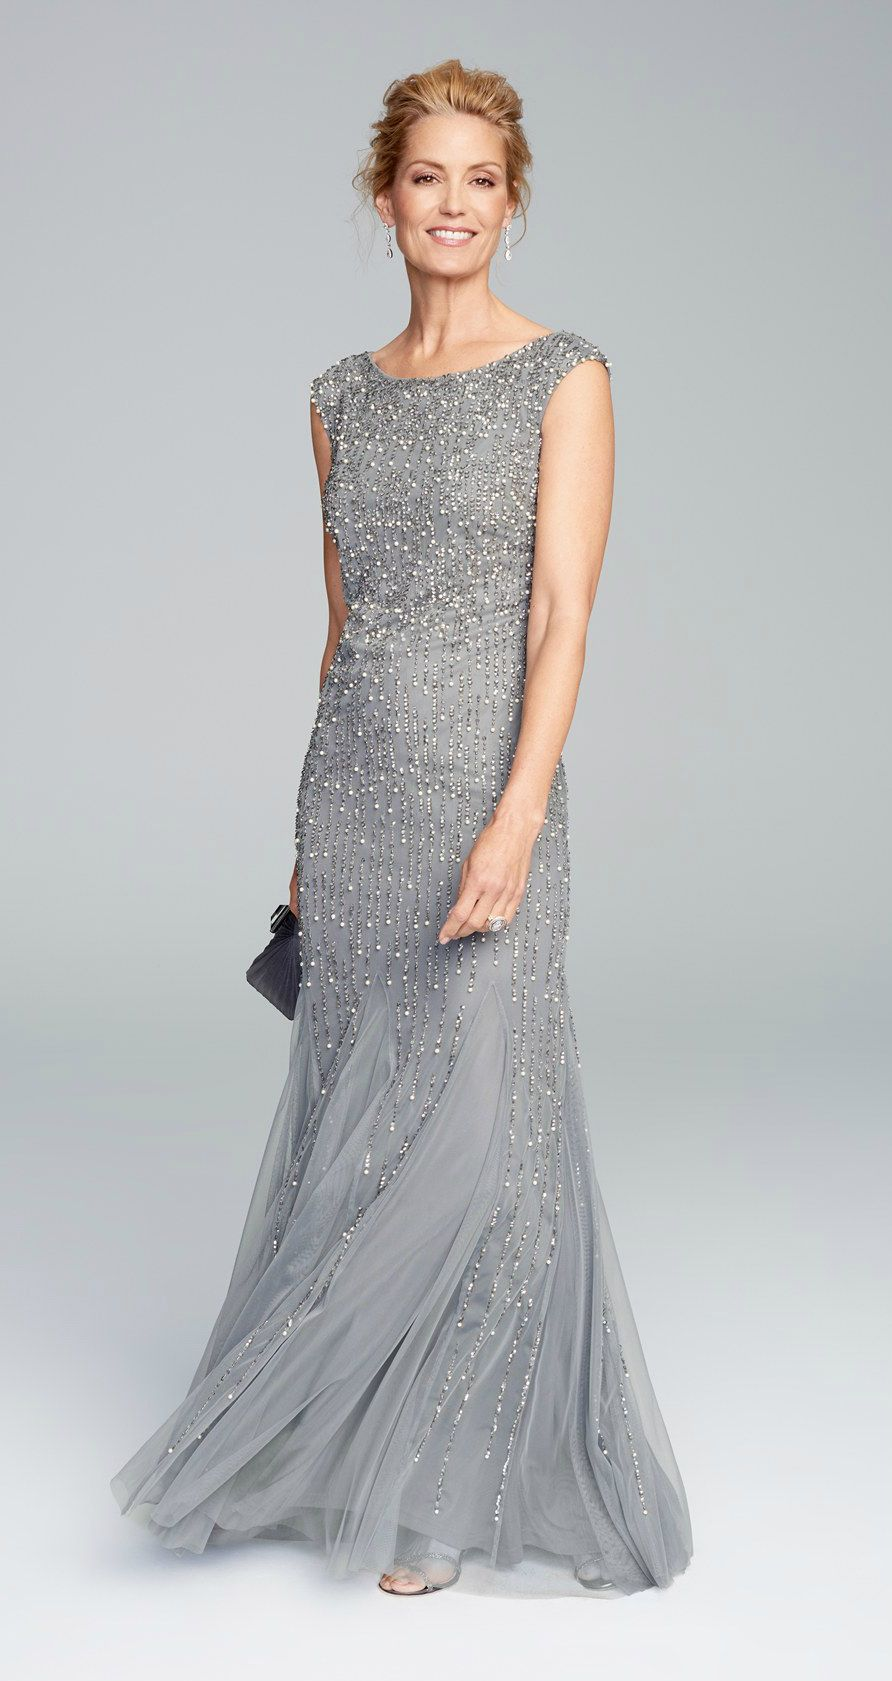 Silver or Gray Mother of the Bride Dresses | Pinterest ...